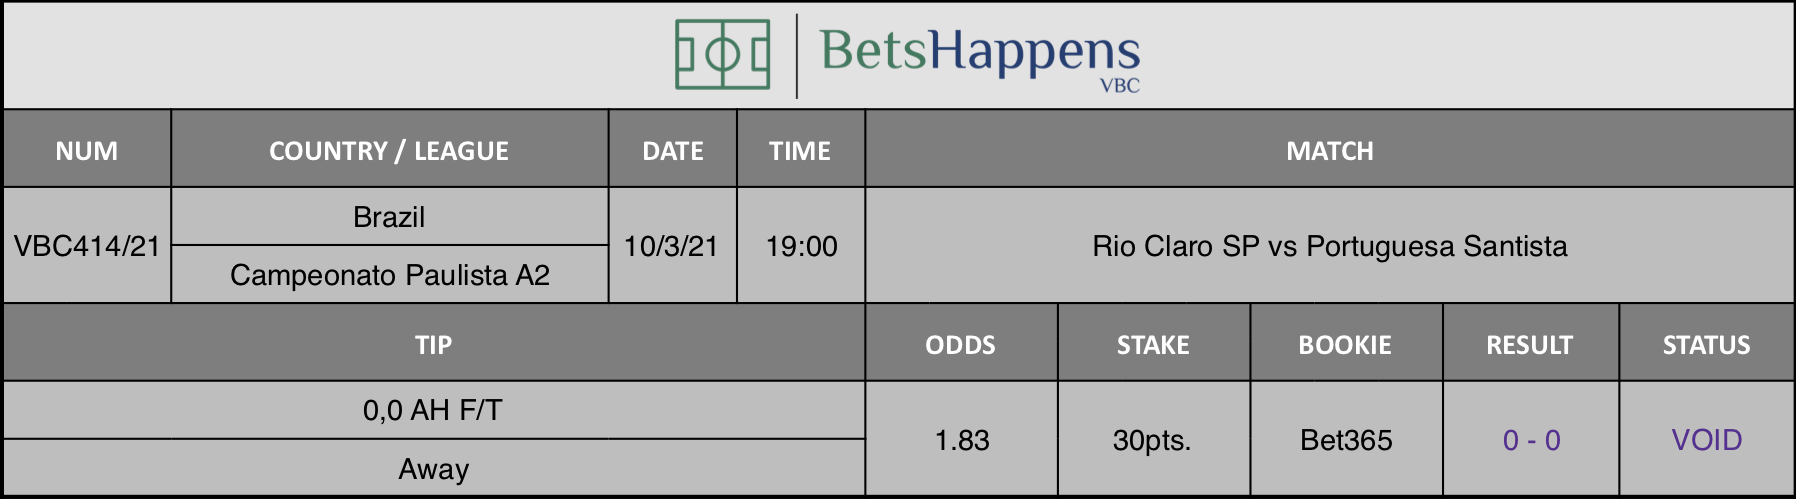 Results of our tip for the Rio Claro SP vs Portuguesa Santista match where 0,0 AH F/T  Away is recommended.